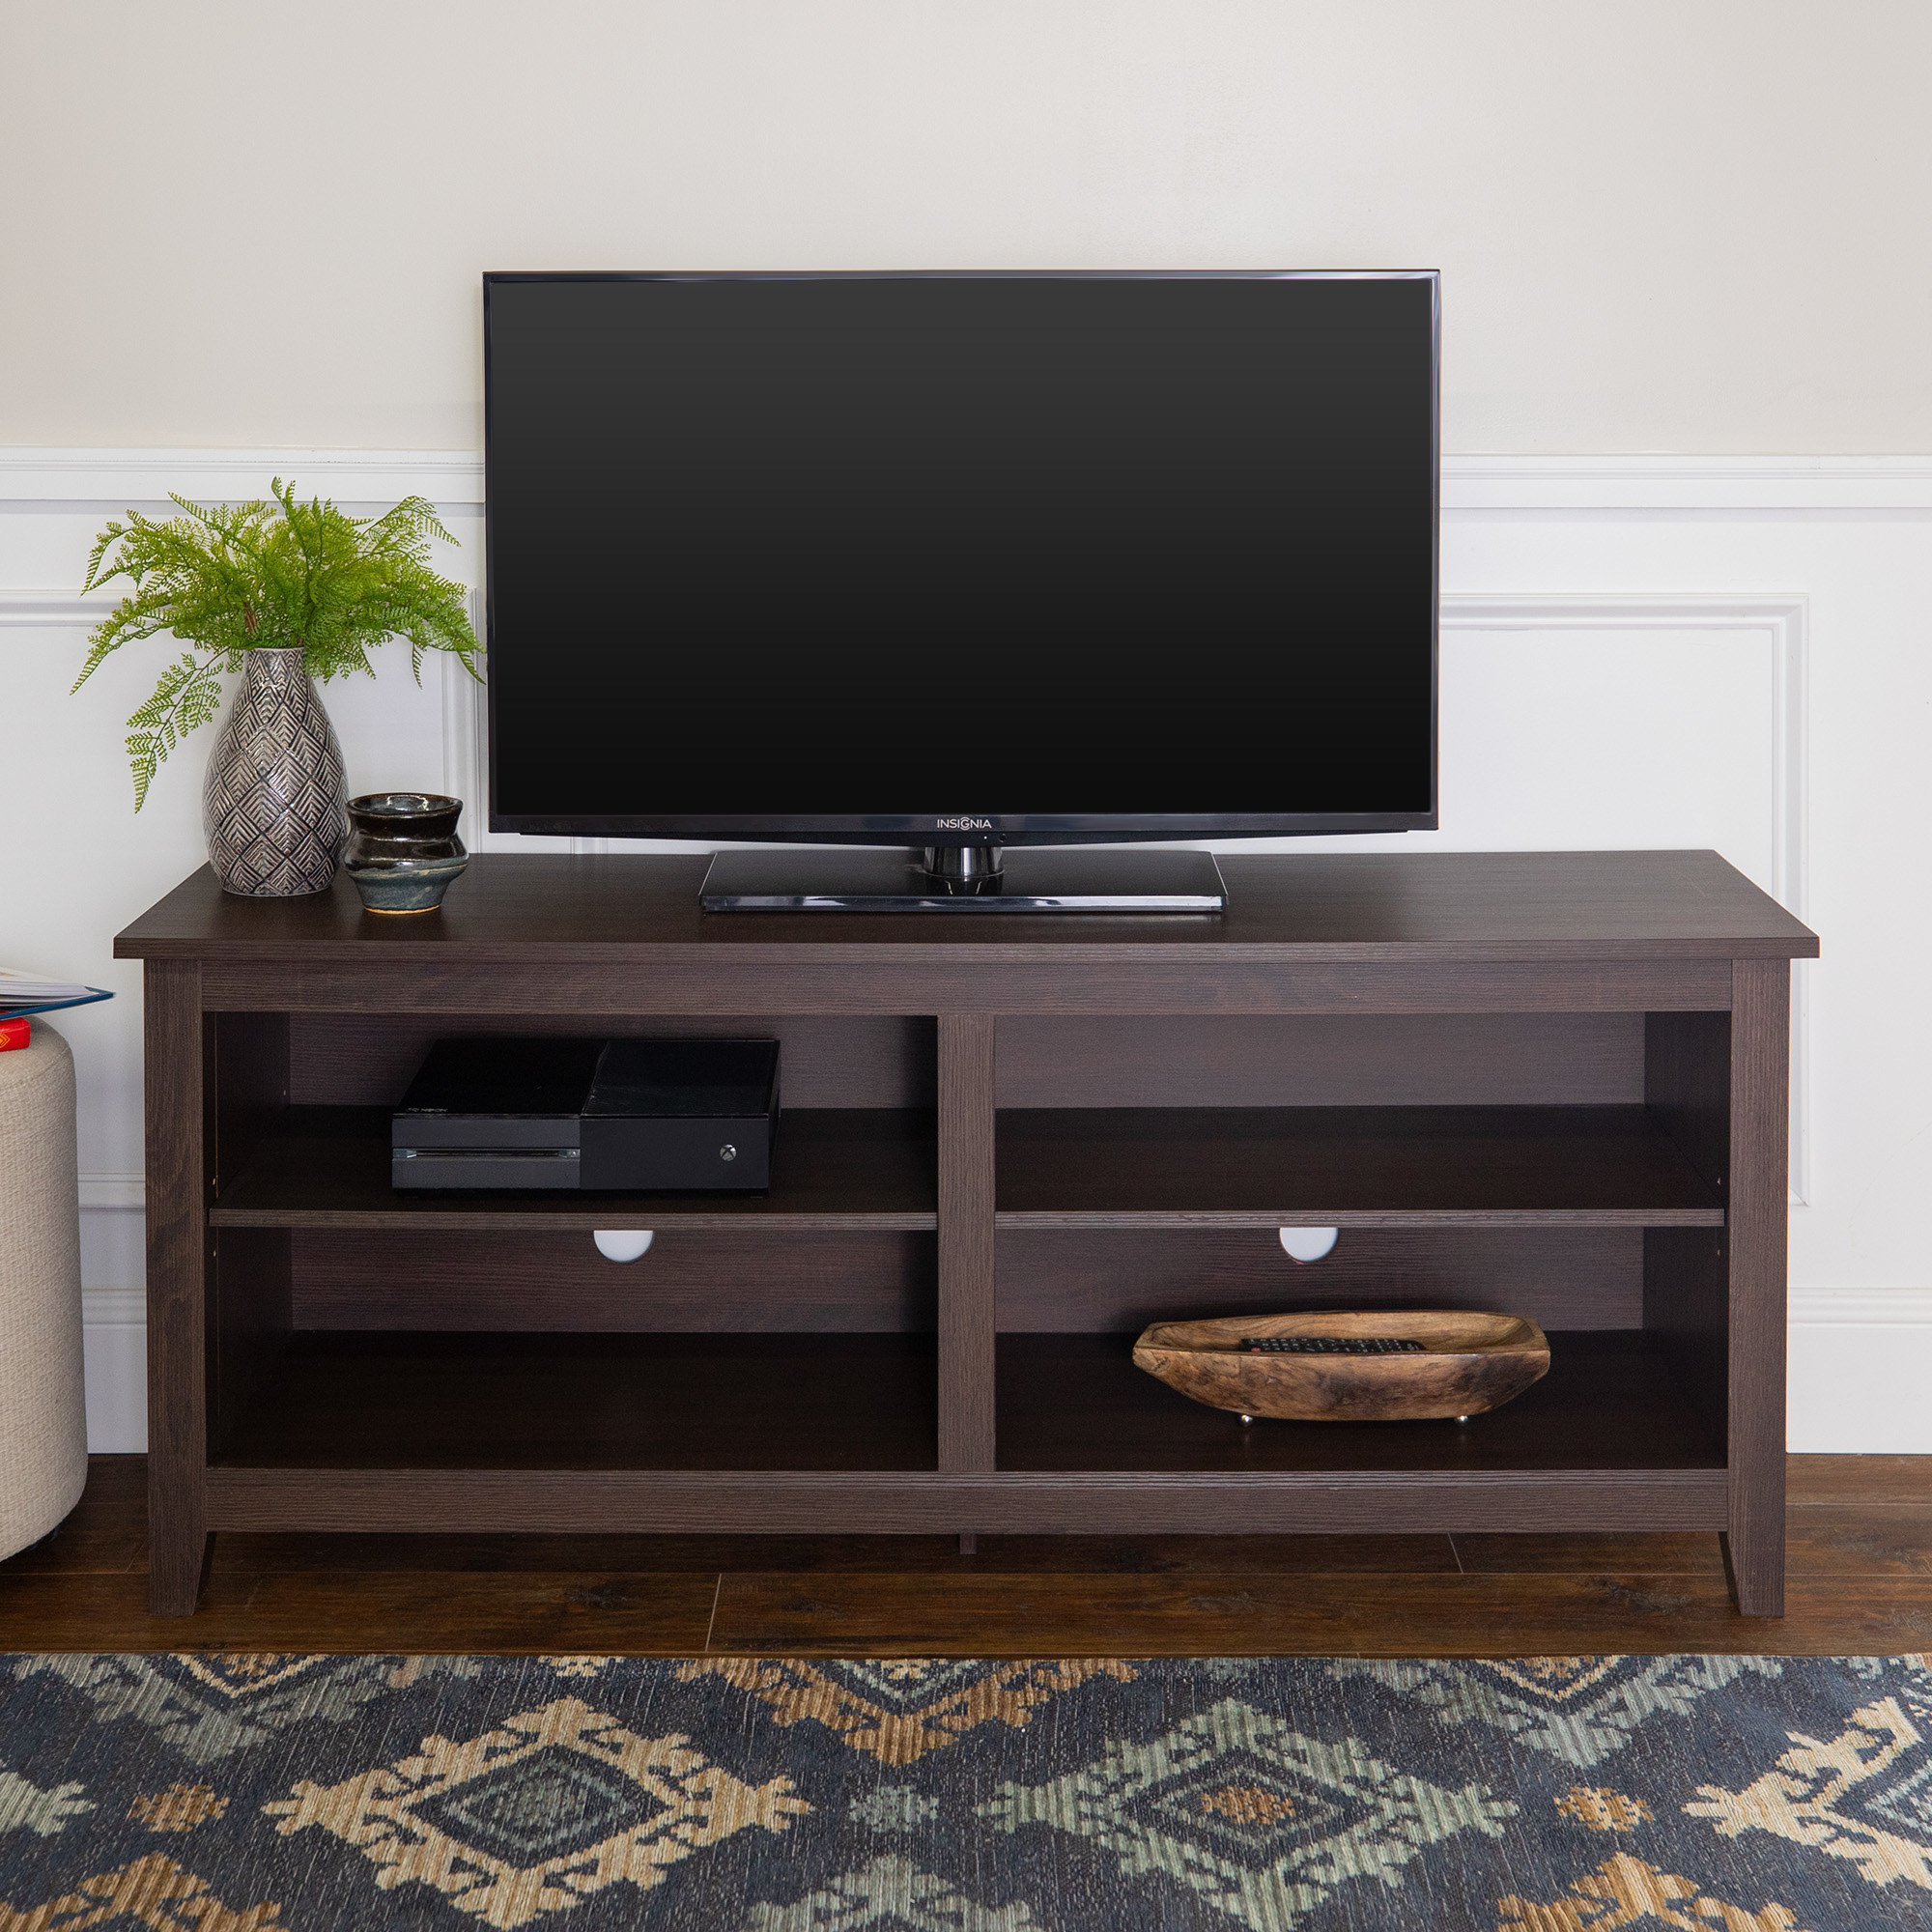 The dark brown stand with a TV and knickknacks